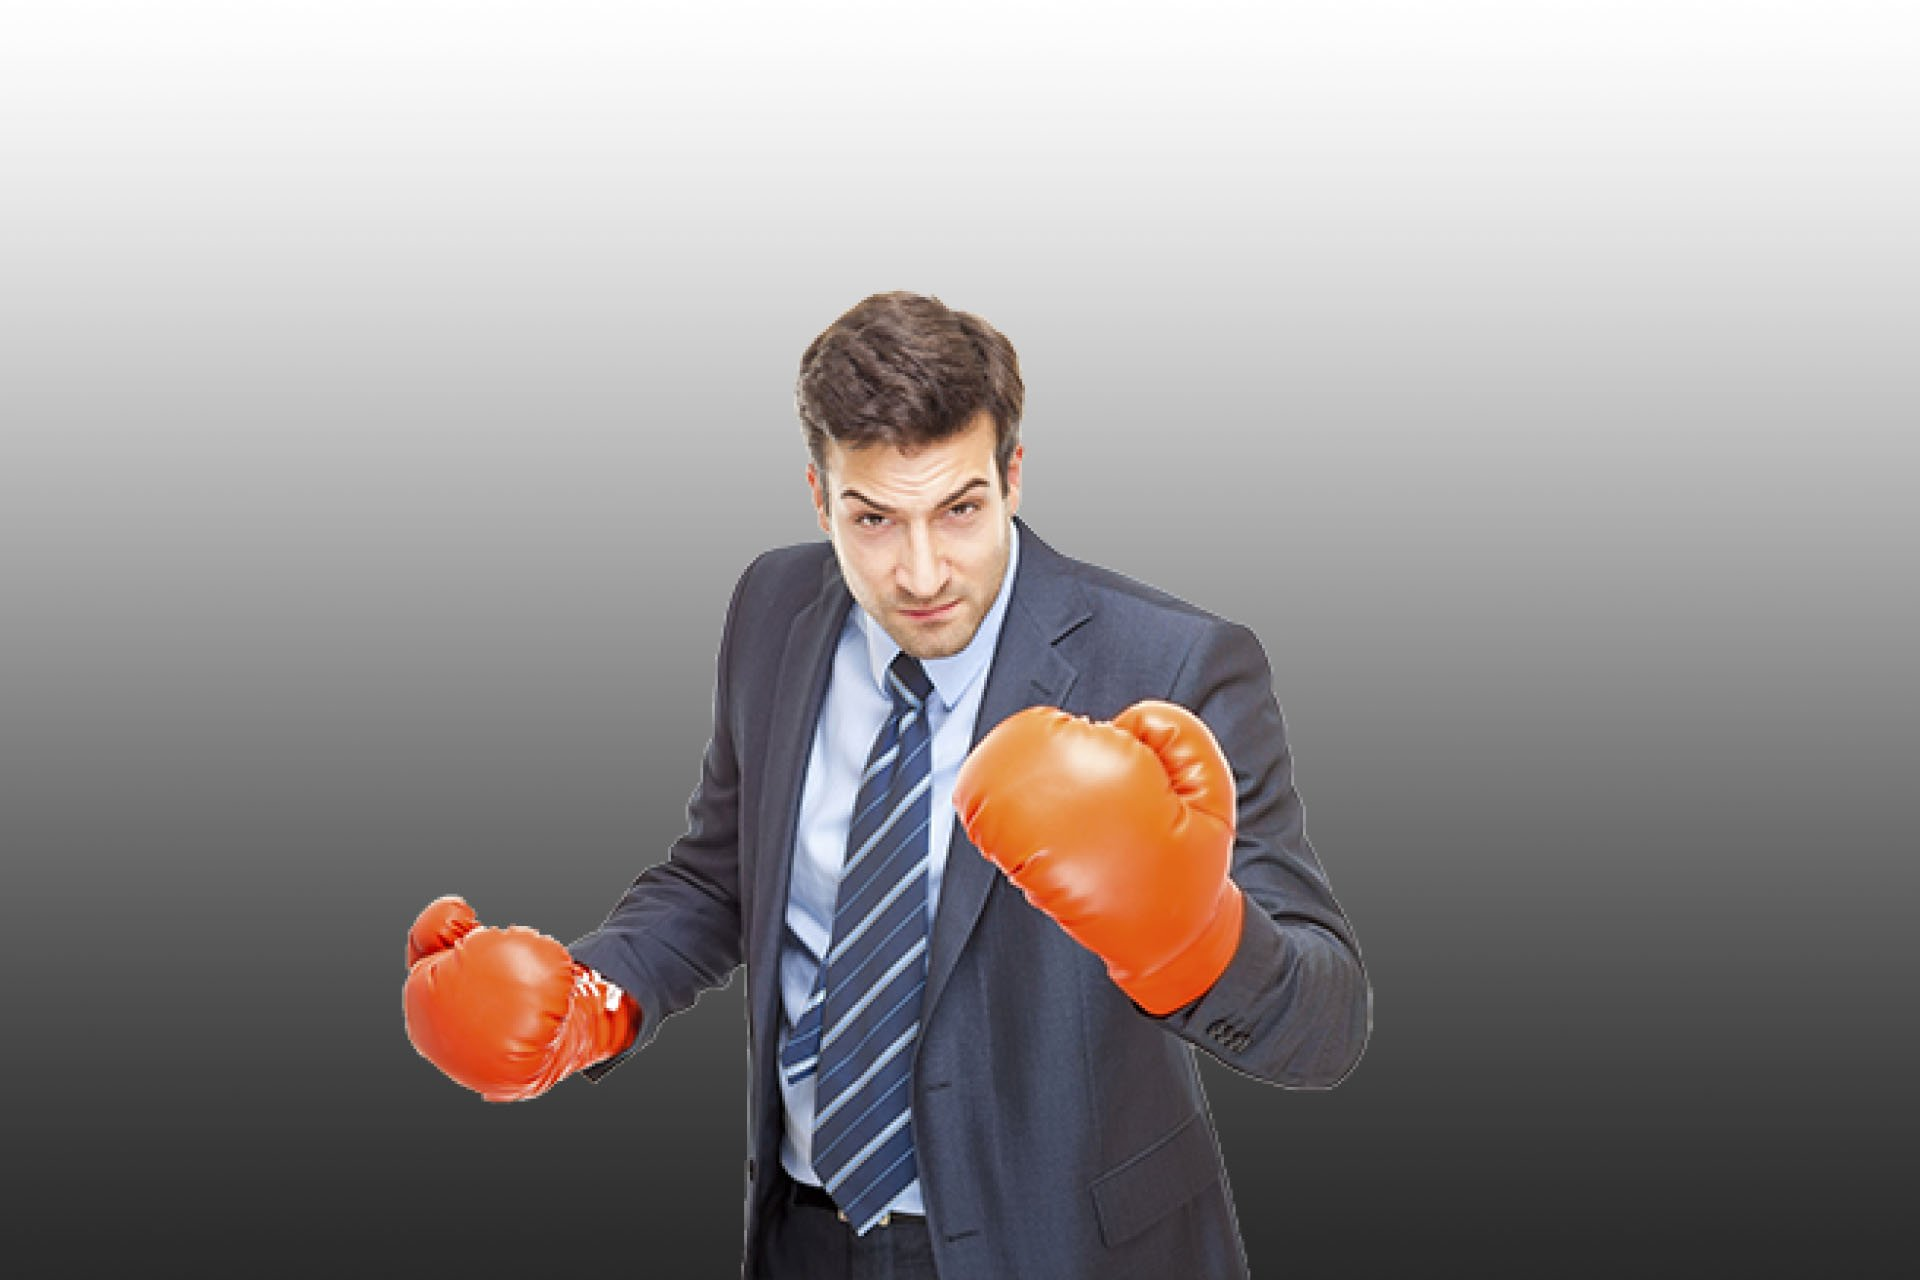 What are the Pros and Cons of hiring a Public Adjuster?